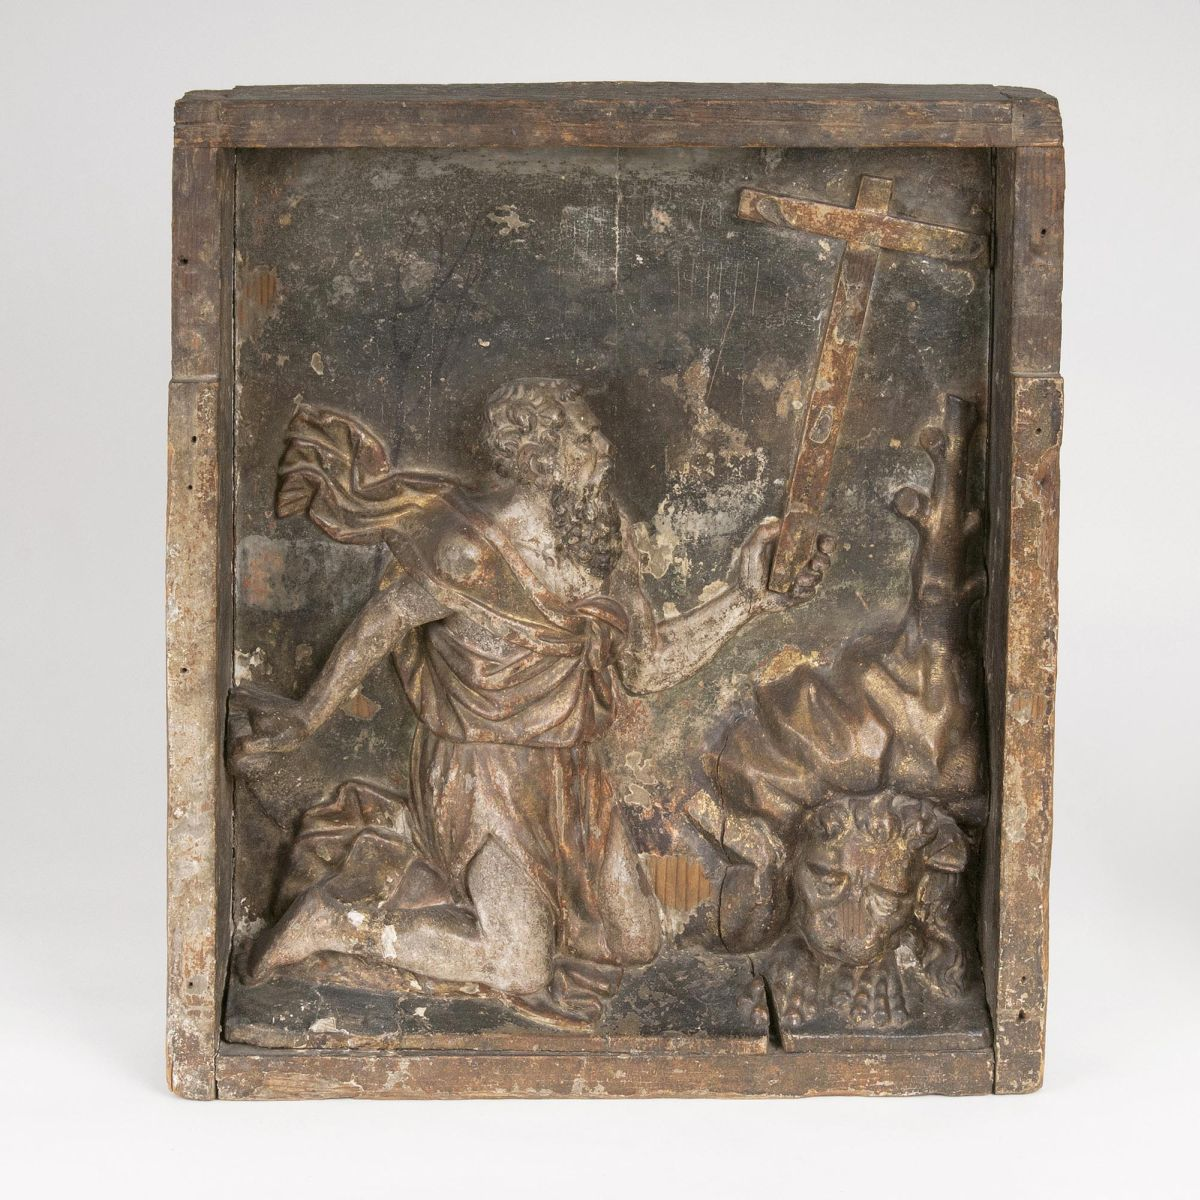 A Wooden Relief 'Saint Jerome in the Wilderness'